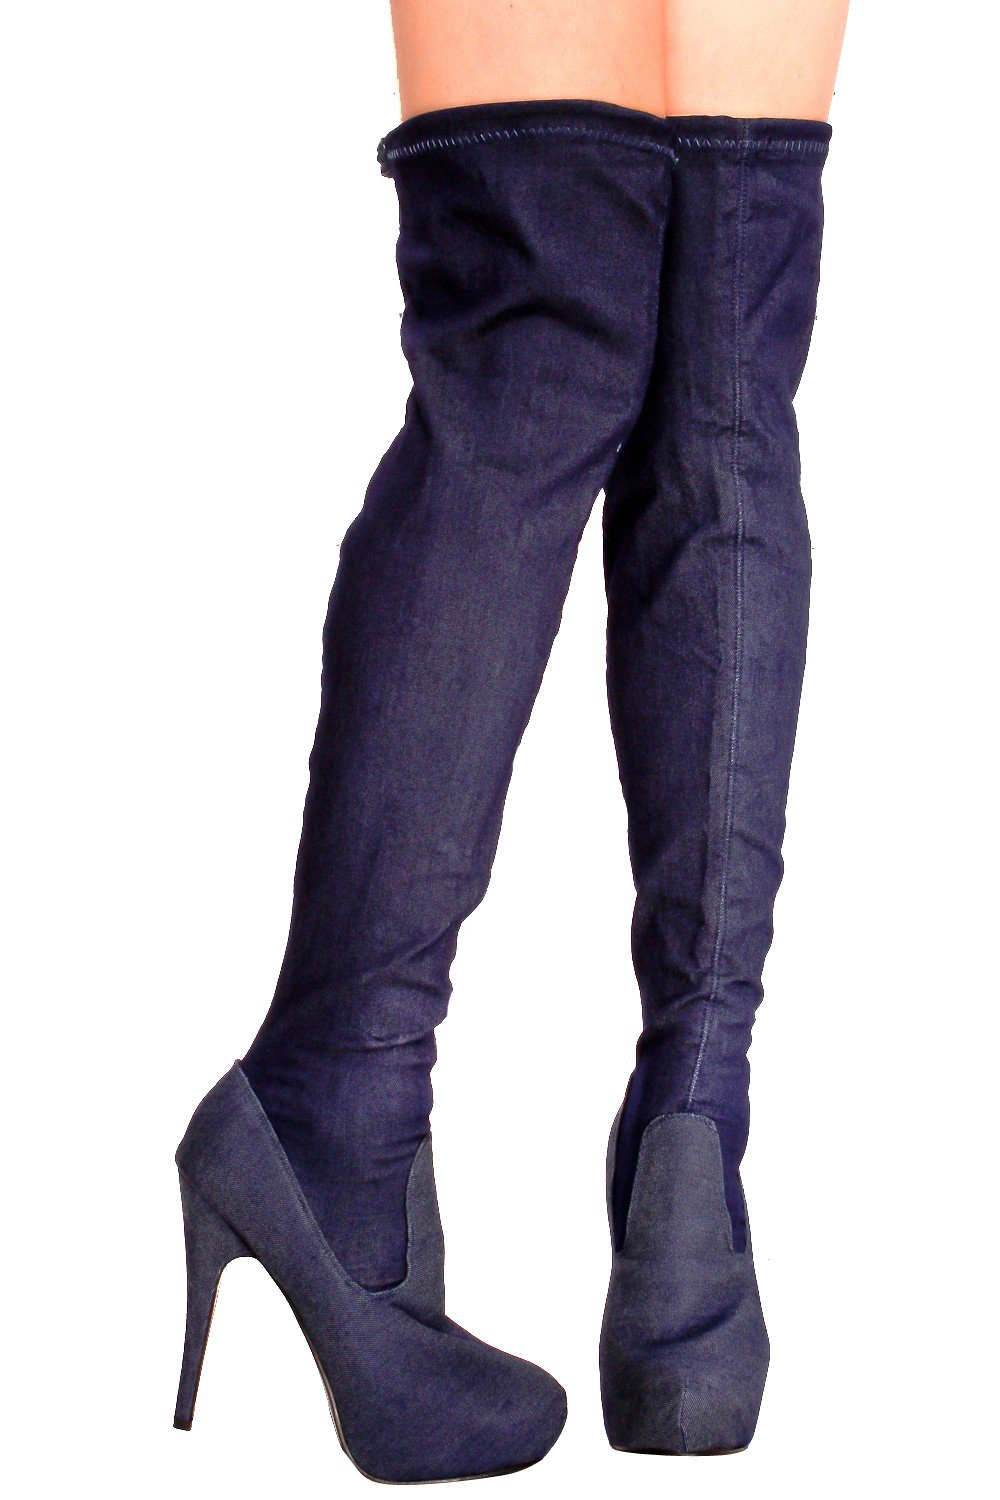 ed3e8b2e08f Lolli Couture Forever Link Faux Leather Lace up Long Combat Style with Heel  Knee High Long